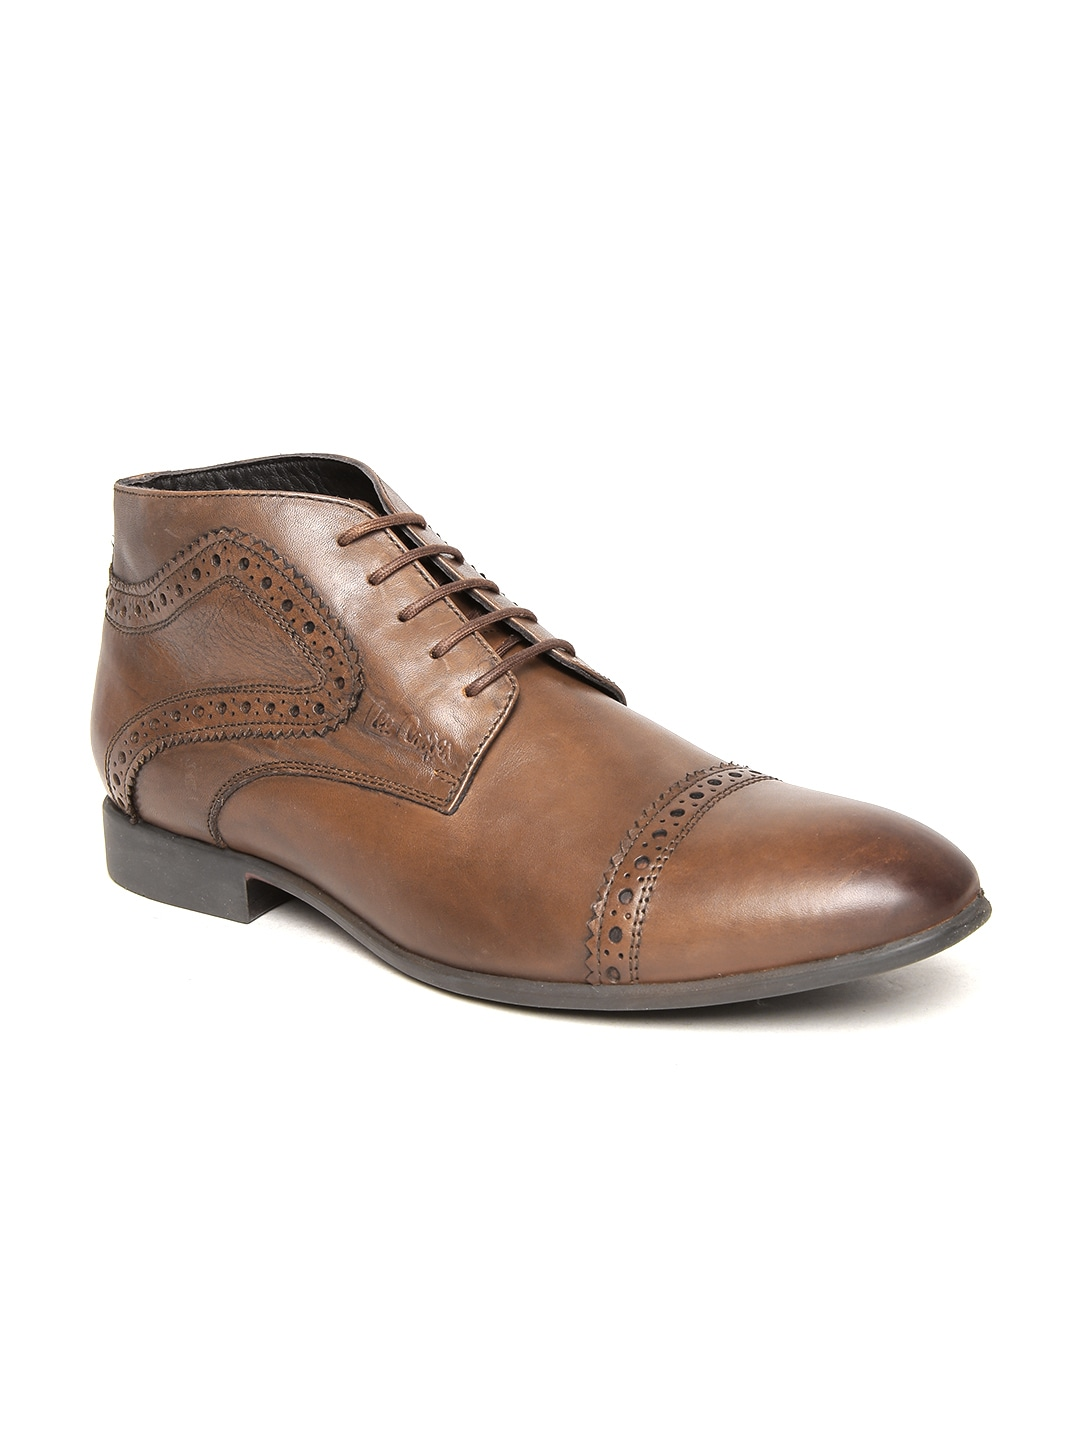 2ea33e562cc Lee cooper lc2174-tan Men Brown Leather Formal Shoes - Best Price ...